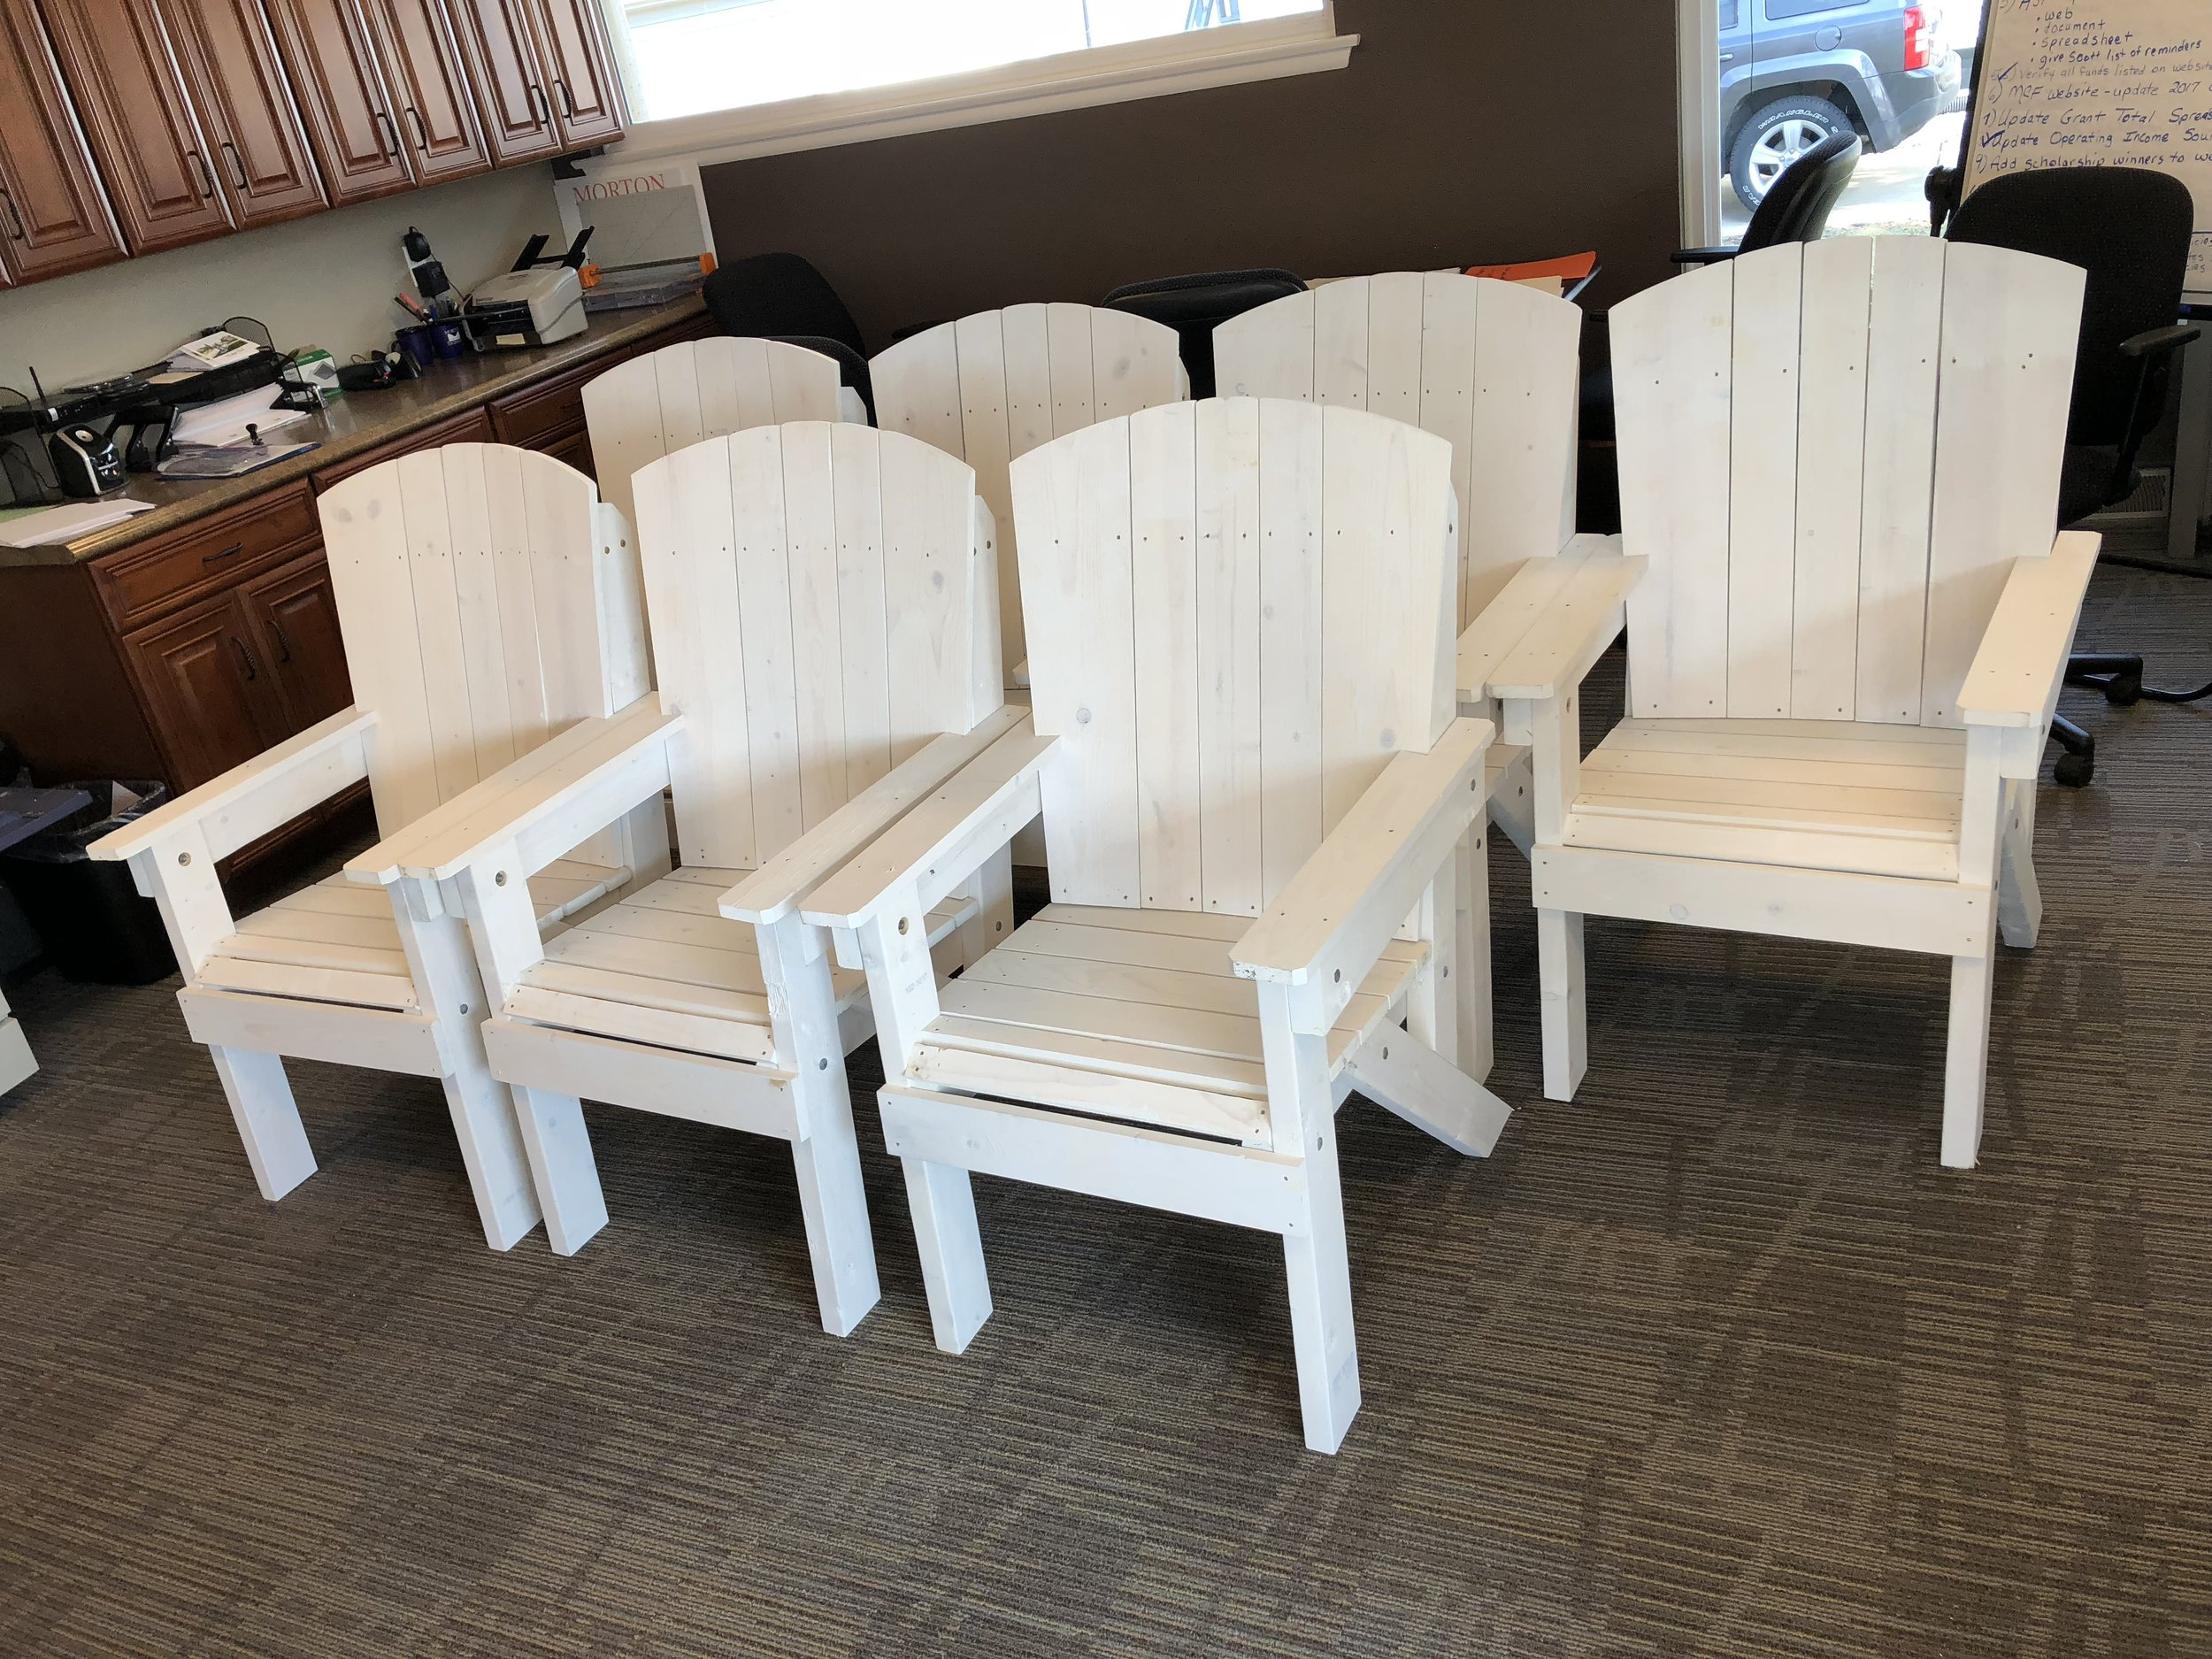 Completed Chairs in MCF Office